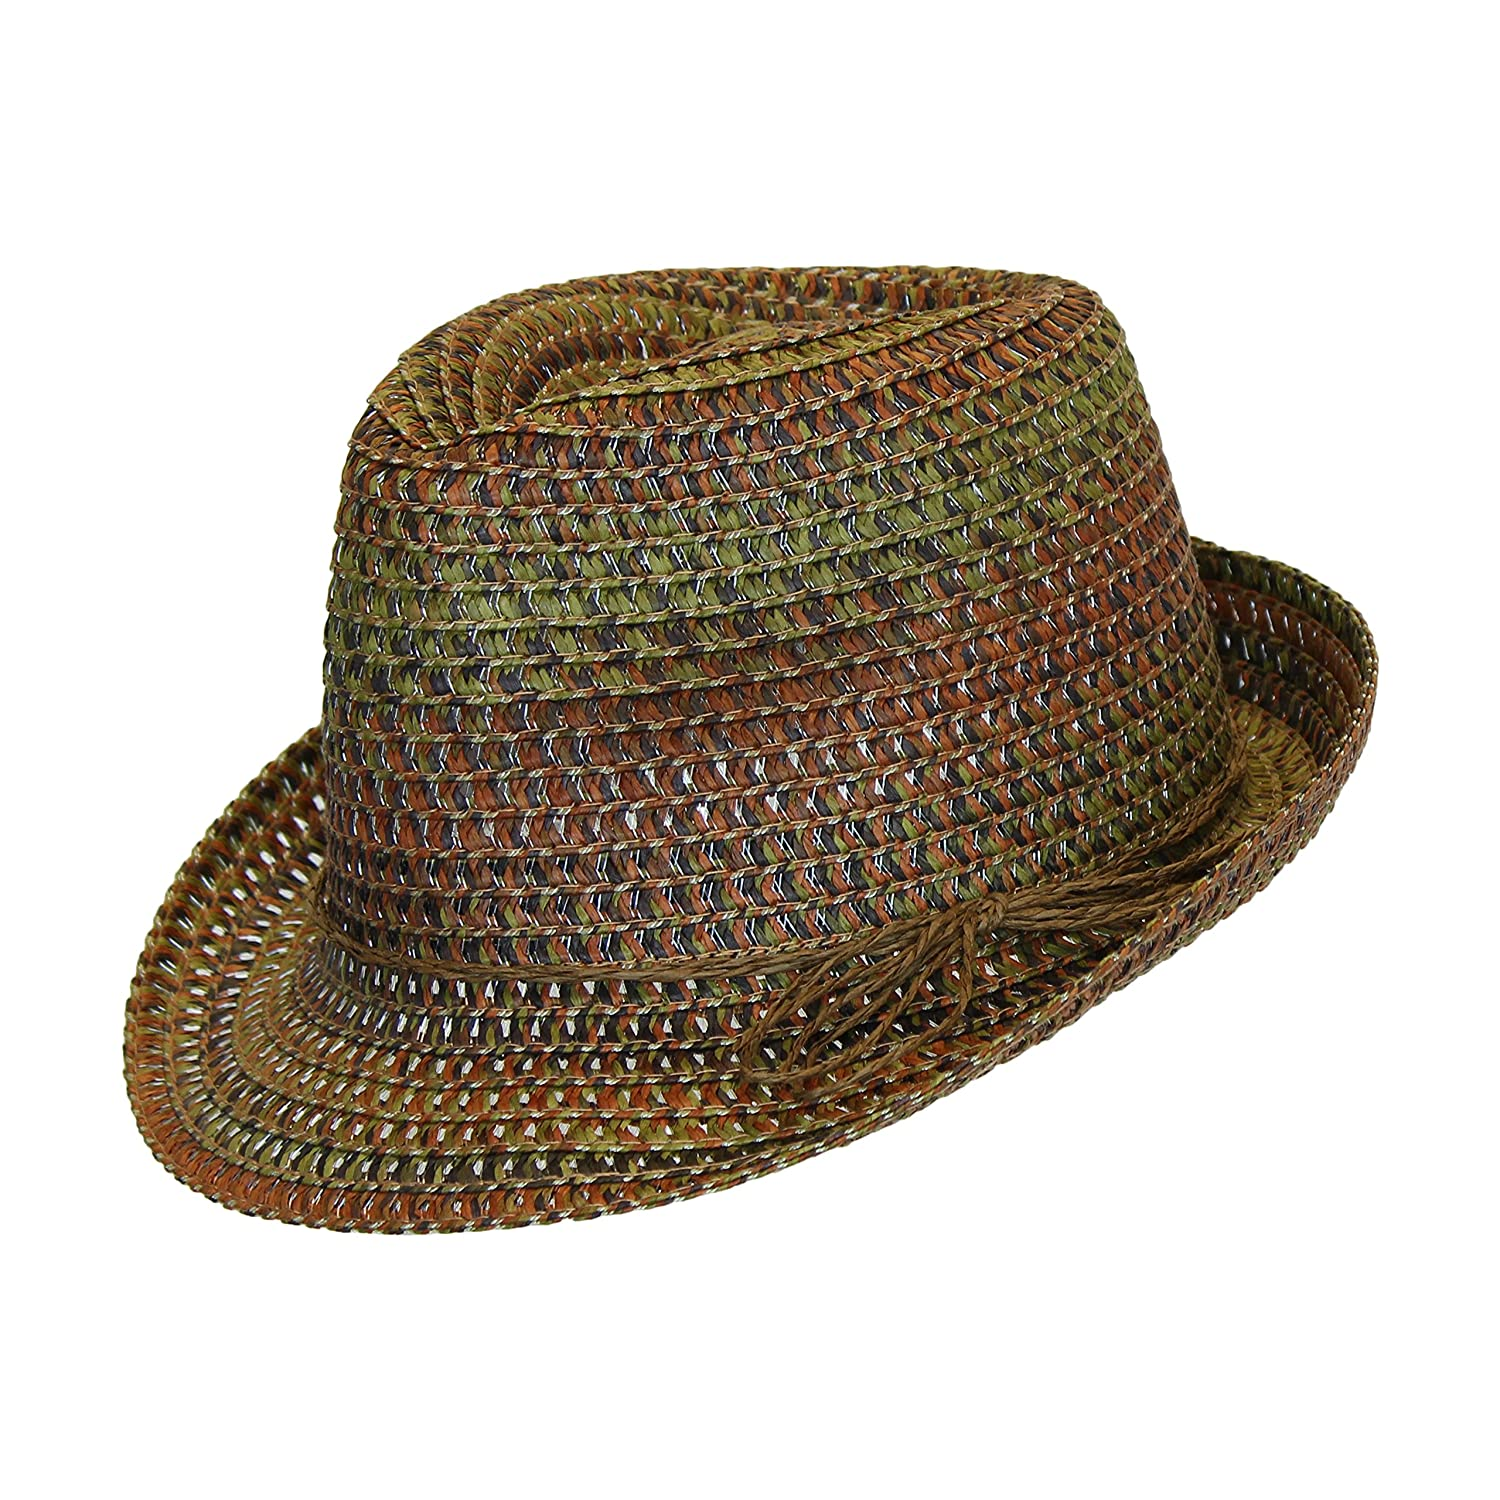 Boho Festival Straw Fedora Sun Hat in Olive, Brown and Rust Earth Tones, One Size TJED071916